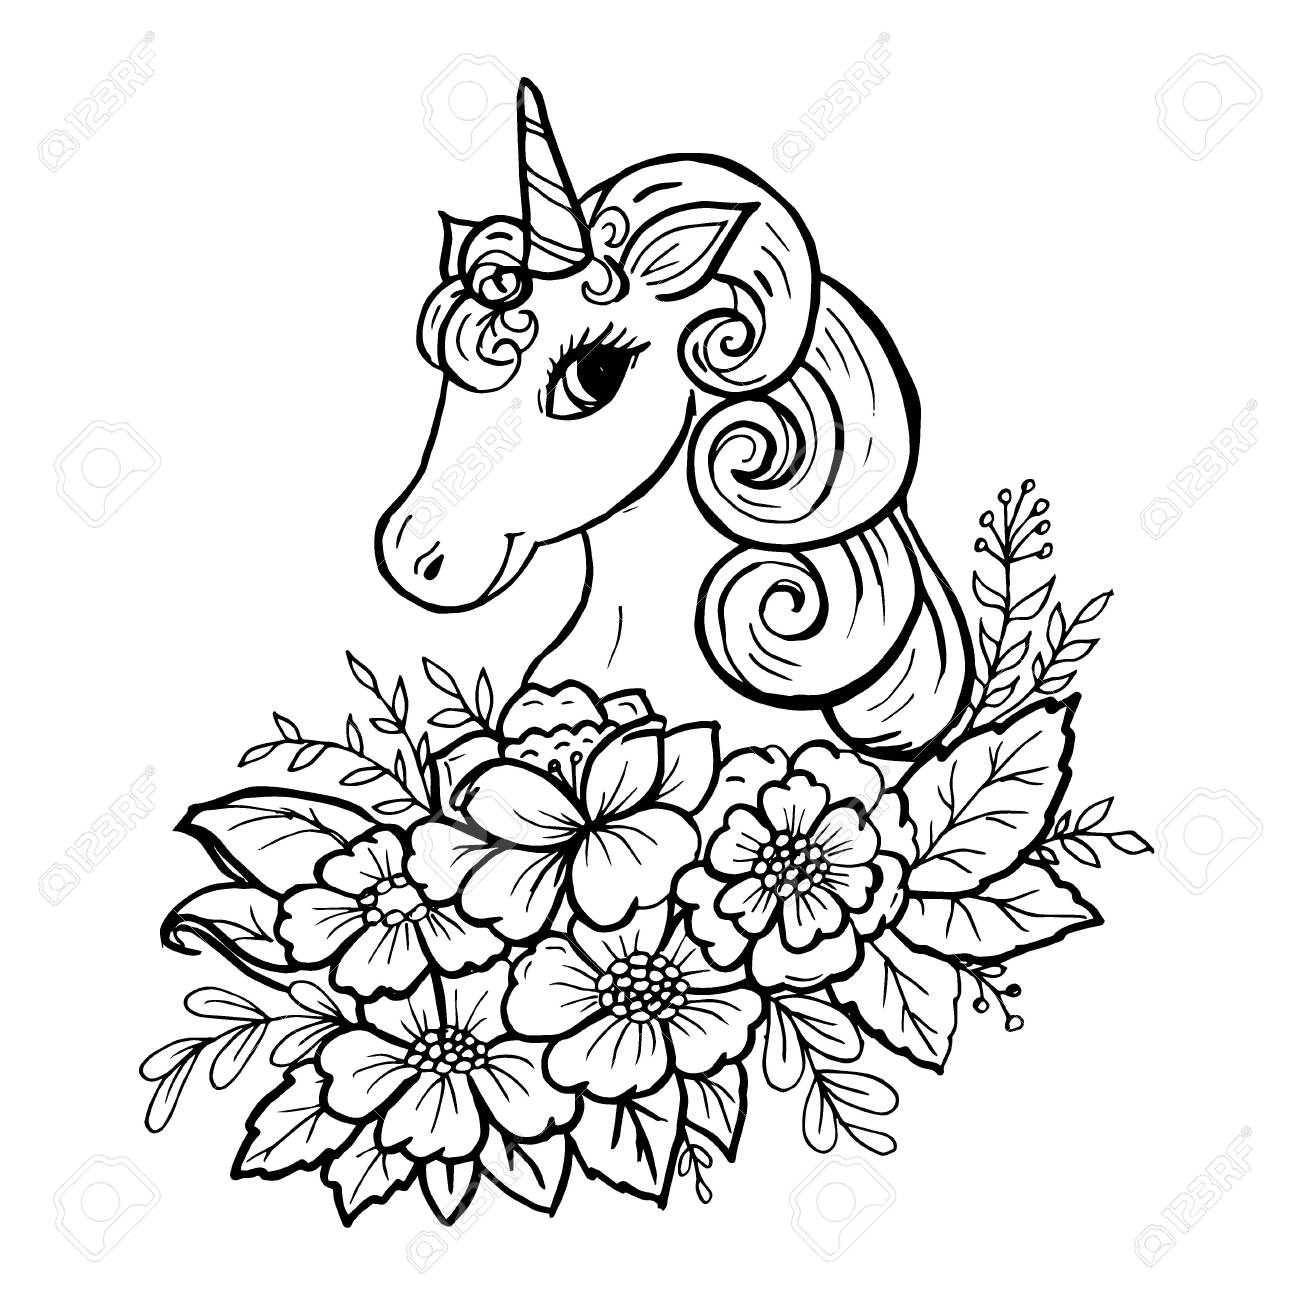 Doodle Cute Unicorn Head In Colors Black On White Royalty Free